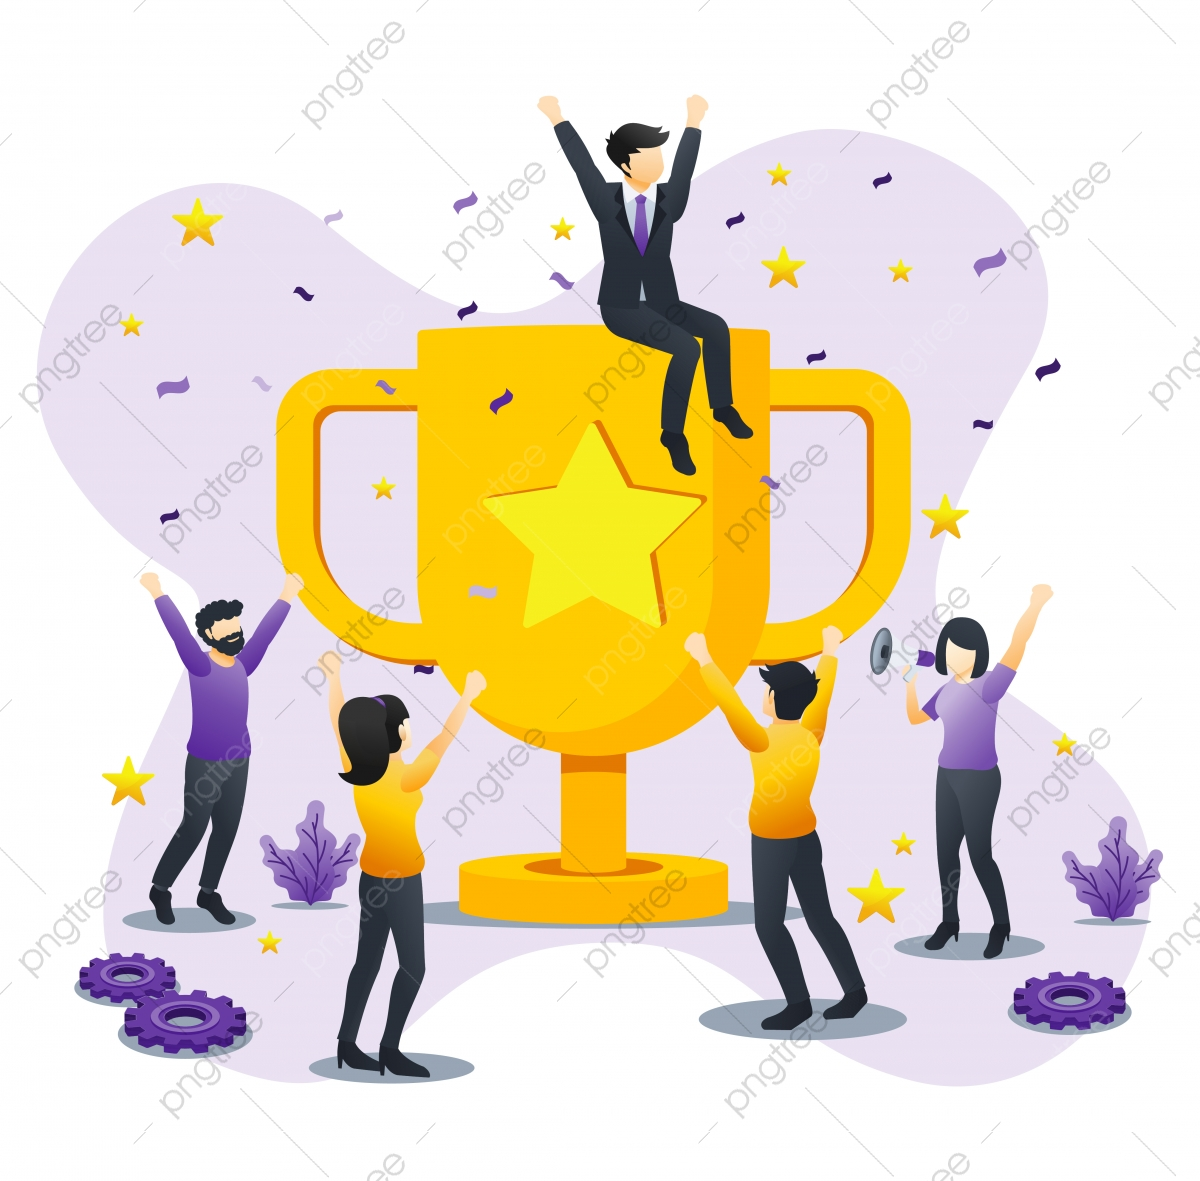 success png images vector and psd files free download on pngtree https pngtree com freepng business team success concept people celebrating success with giant golden trophy achievement partnership leadership can used for webinfographics landing page flat vector illustration 5335905 html